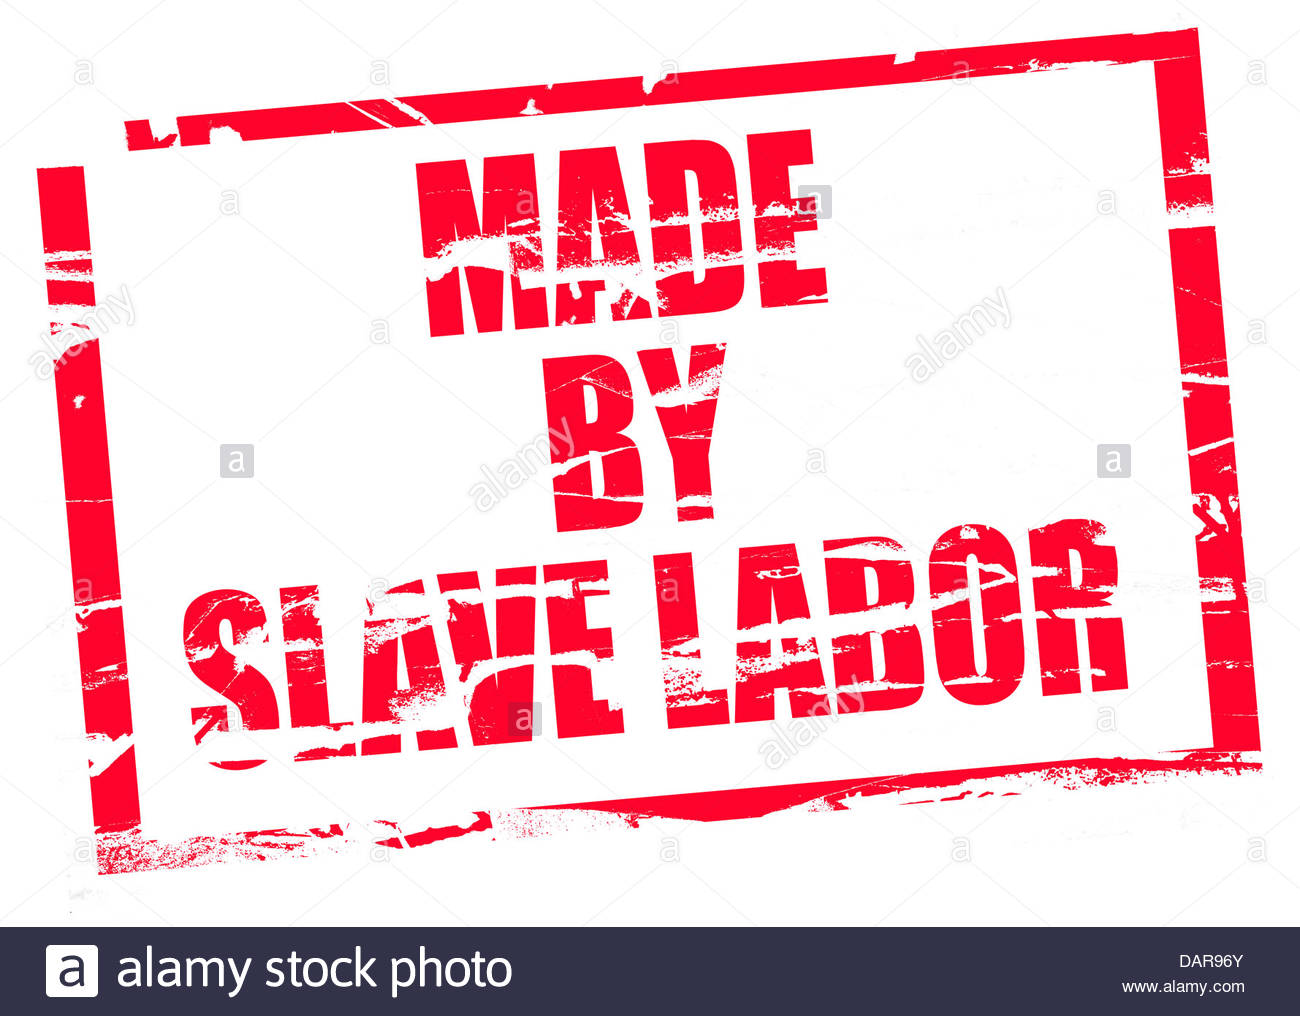 Digital composite Rubber stamp. Made by slave labor - Stock Image